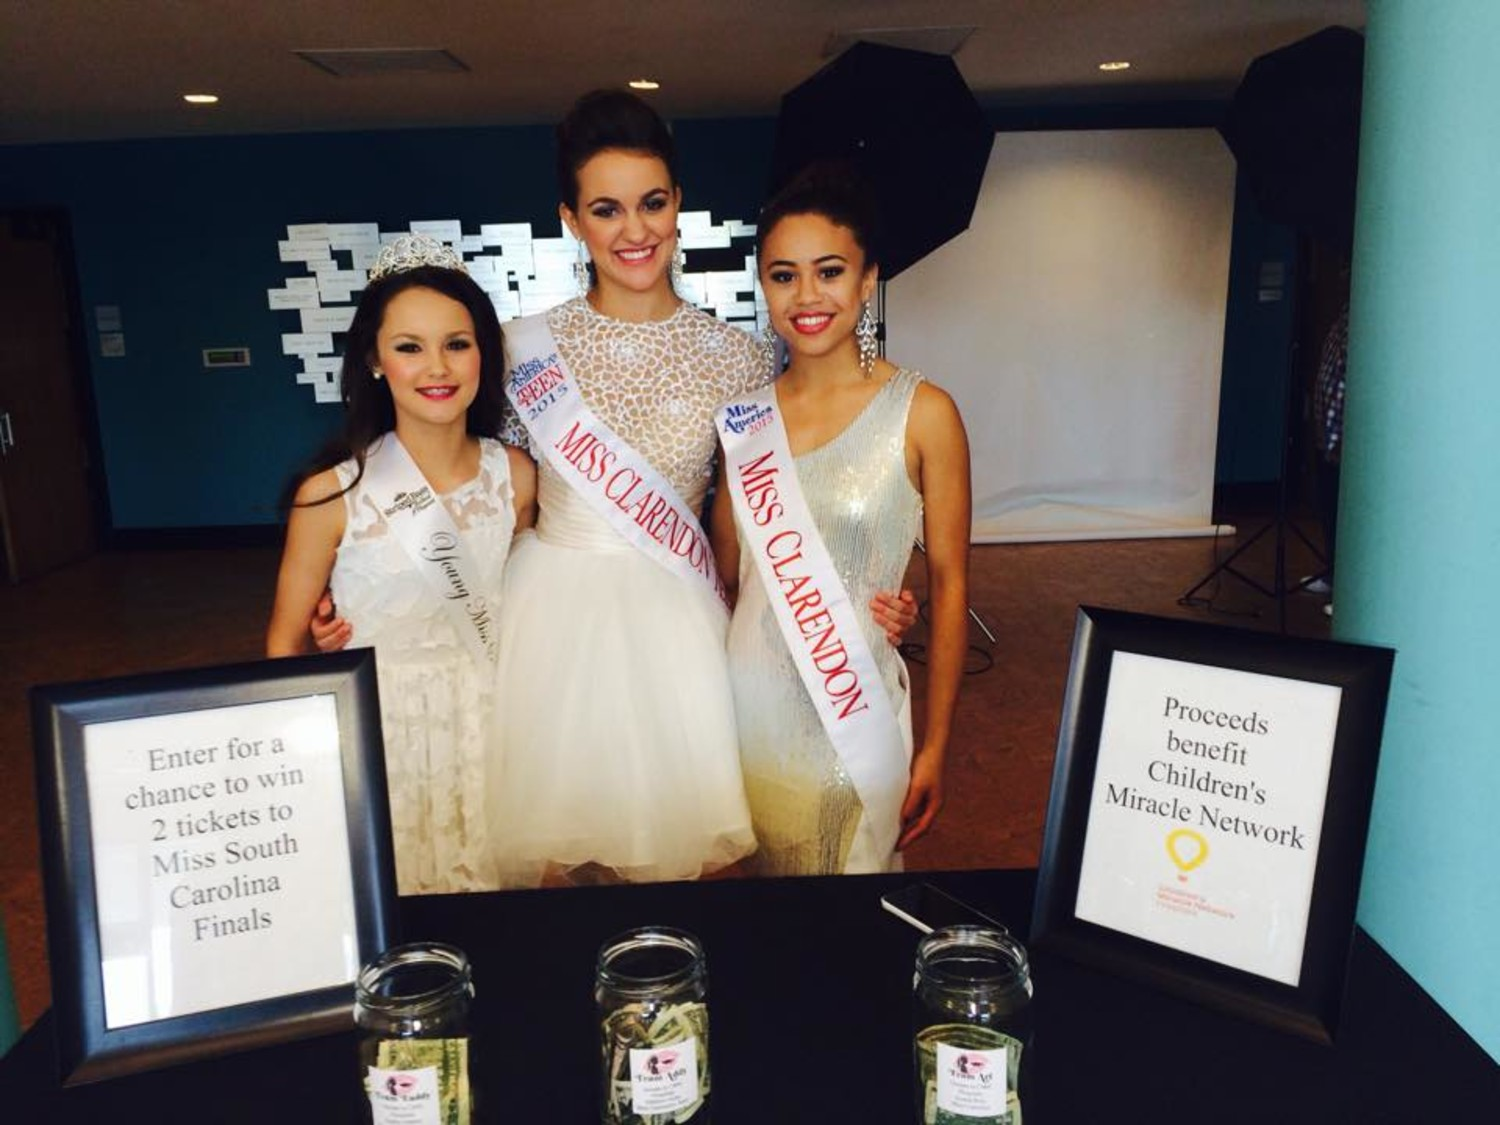 ERICKA SEXTON FLOYD / SPECIAL TO THE TIMESFrom left, Miss Clarendon Pre-teen Eaddy Osteen, Miss Clarendon Teen Addison Hicks and Miss Clarendon Ariana Ruiz raised money Saturday during the 2015 Miss Striped Bass Festival Pageant at Weldon Auditorium for the 2nd annual Kiss My Striped Bass fundraiser for the Children's Miracle Network hospitals. The team to get the least donations will have to kiss a fish Friday during opening ceremonies for the 36th annual Striped Bass Festival.